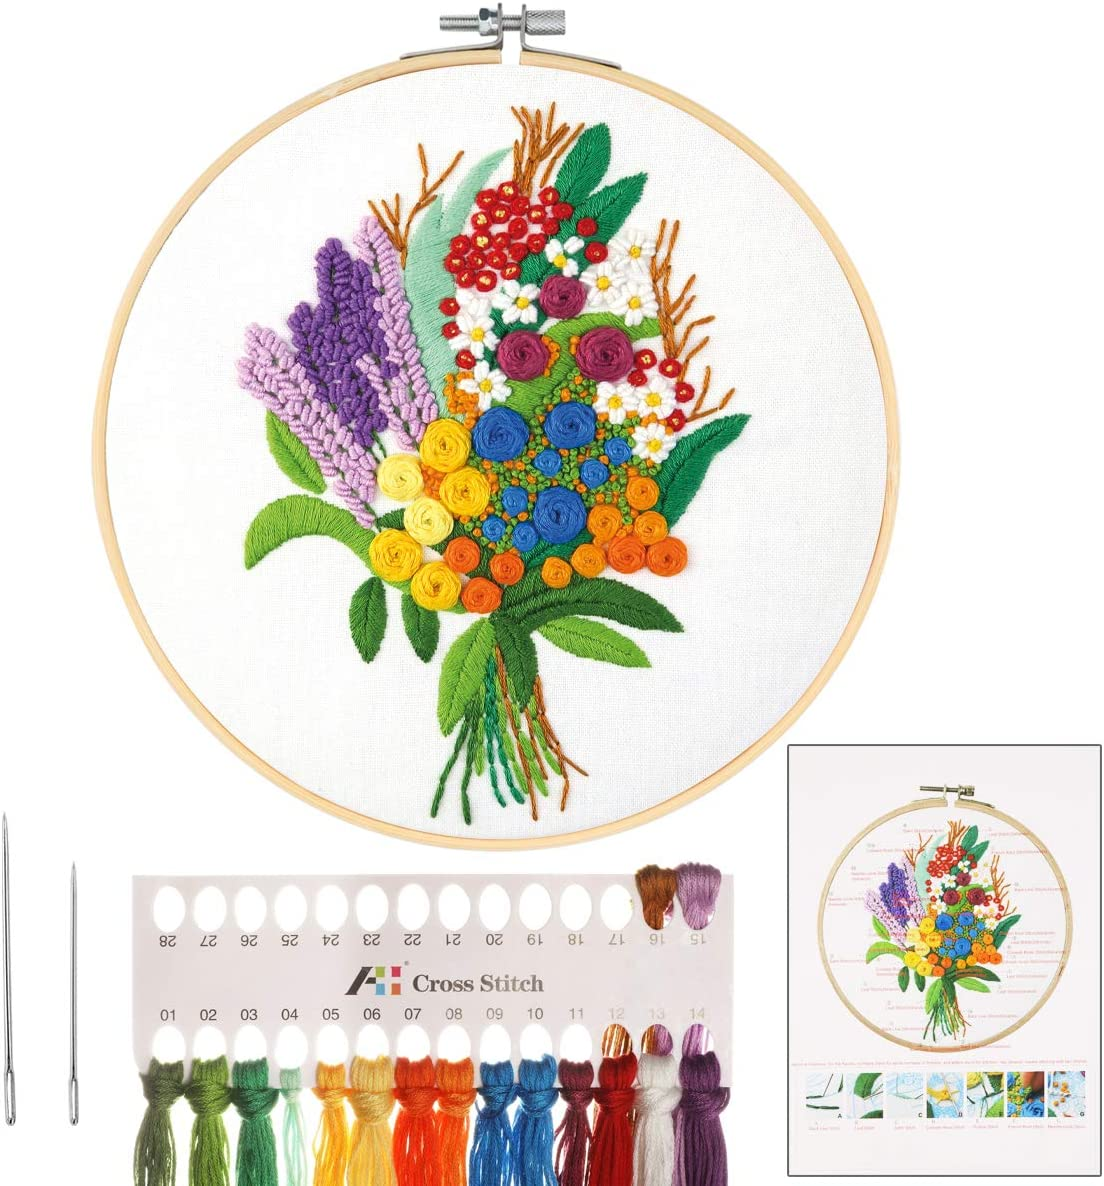 MWOOT Full Range Embroidery Starter Kit with Floral Pattern,DIY Cross Stitch Stamped Embroidery Craft Handmade Art Sewing Kit for Adults Beginner 8 Inch,Style B